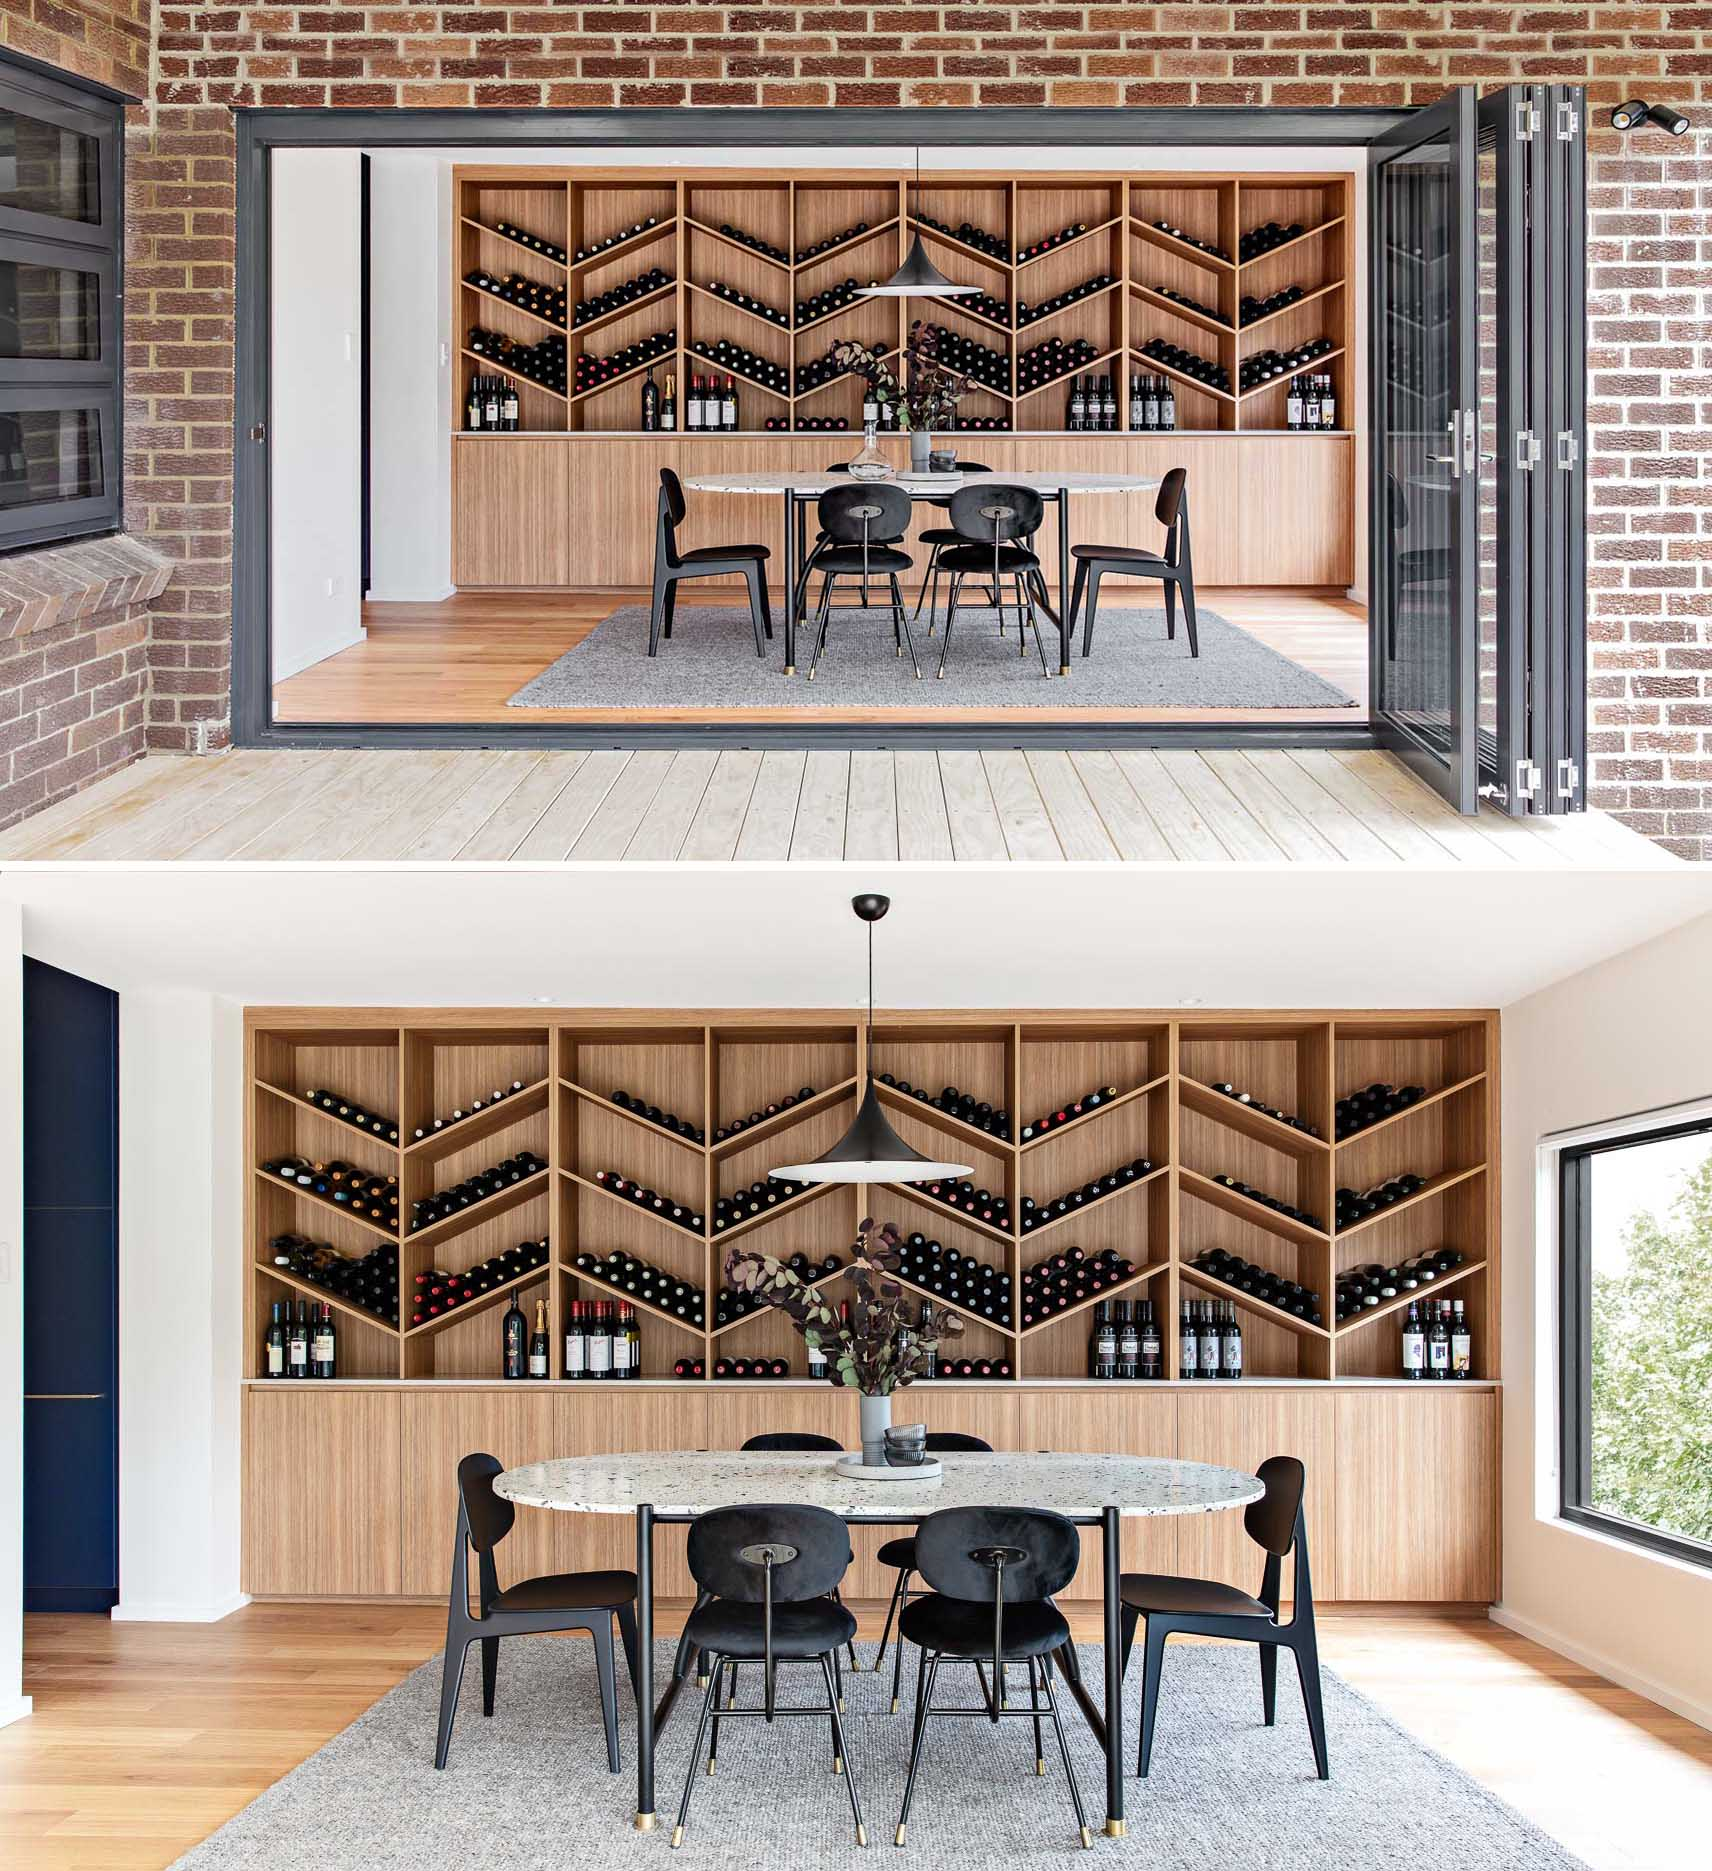 The wine storage wall, which is made from wood, includes lower cabinets, a countertop, and a shelving unit with a chevron design.